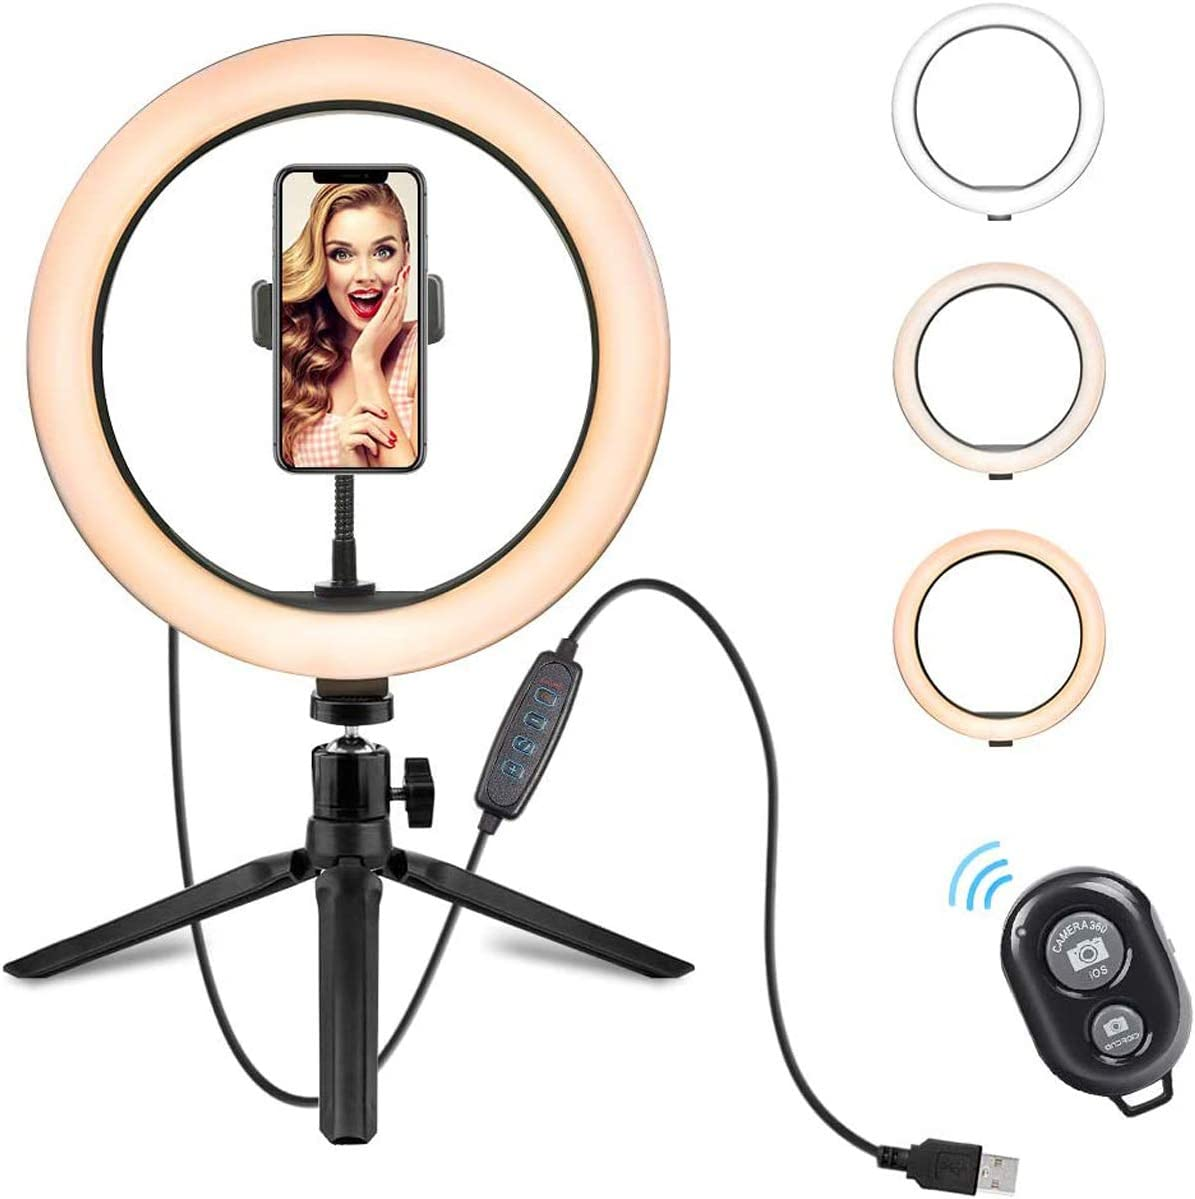 10 Inch Selfie Ring Light, LED Desktop Ring Light with Tripod Stand and Phone Holder Dimmable Phone Ring Light Compatible with iPhone Android for Live Stream, Makeup, YouTube Video